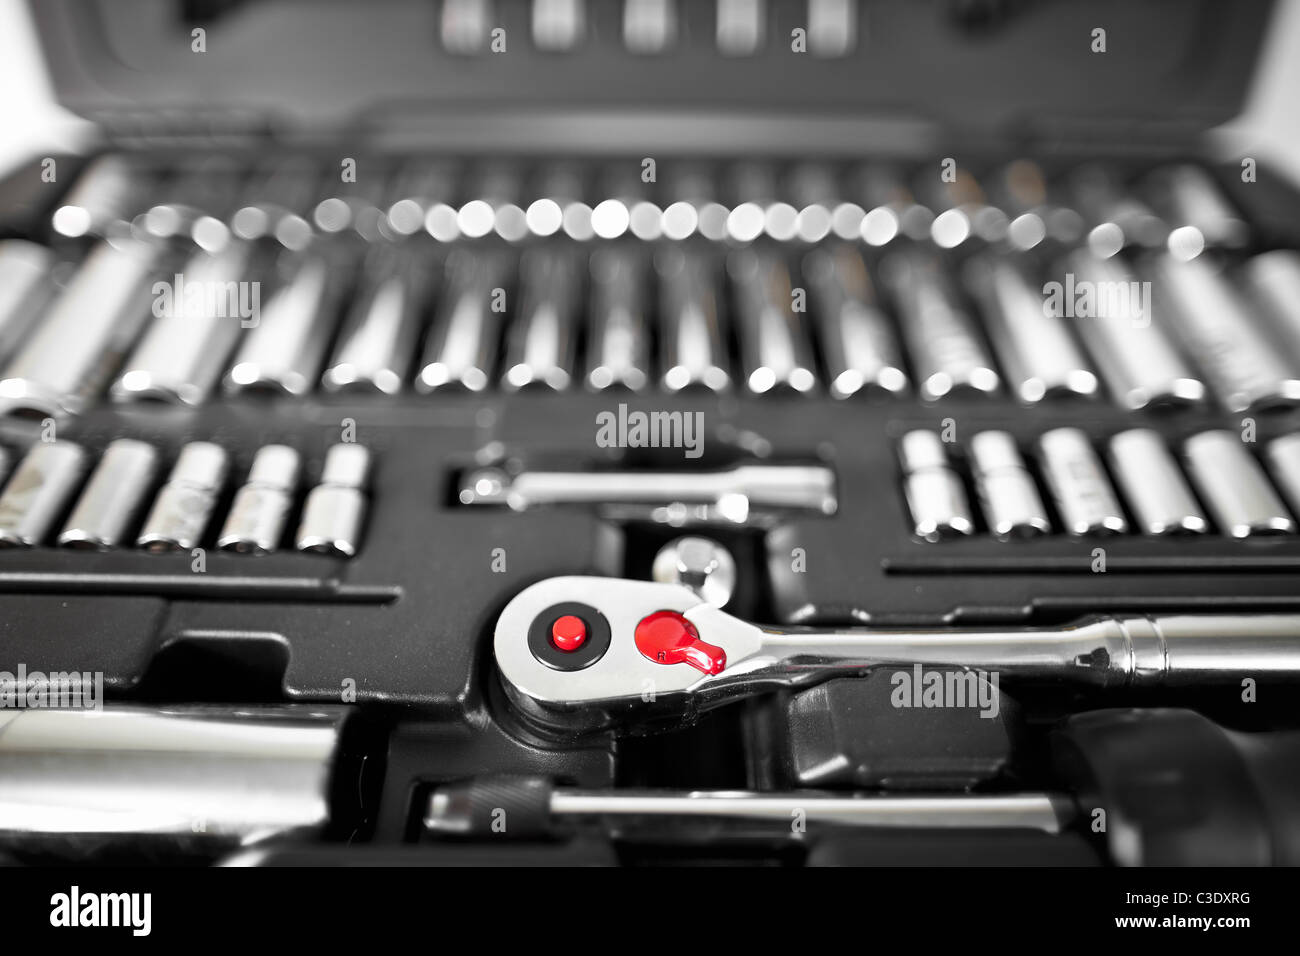 Socket wrench set in case, close up. - Stock Image